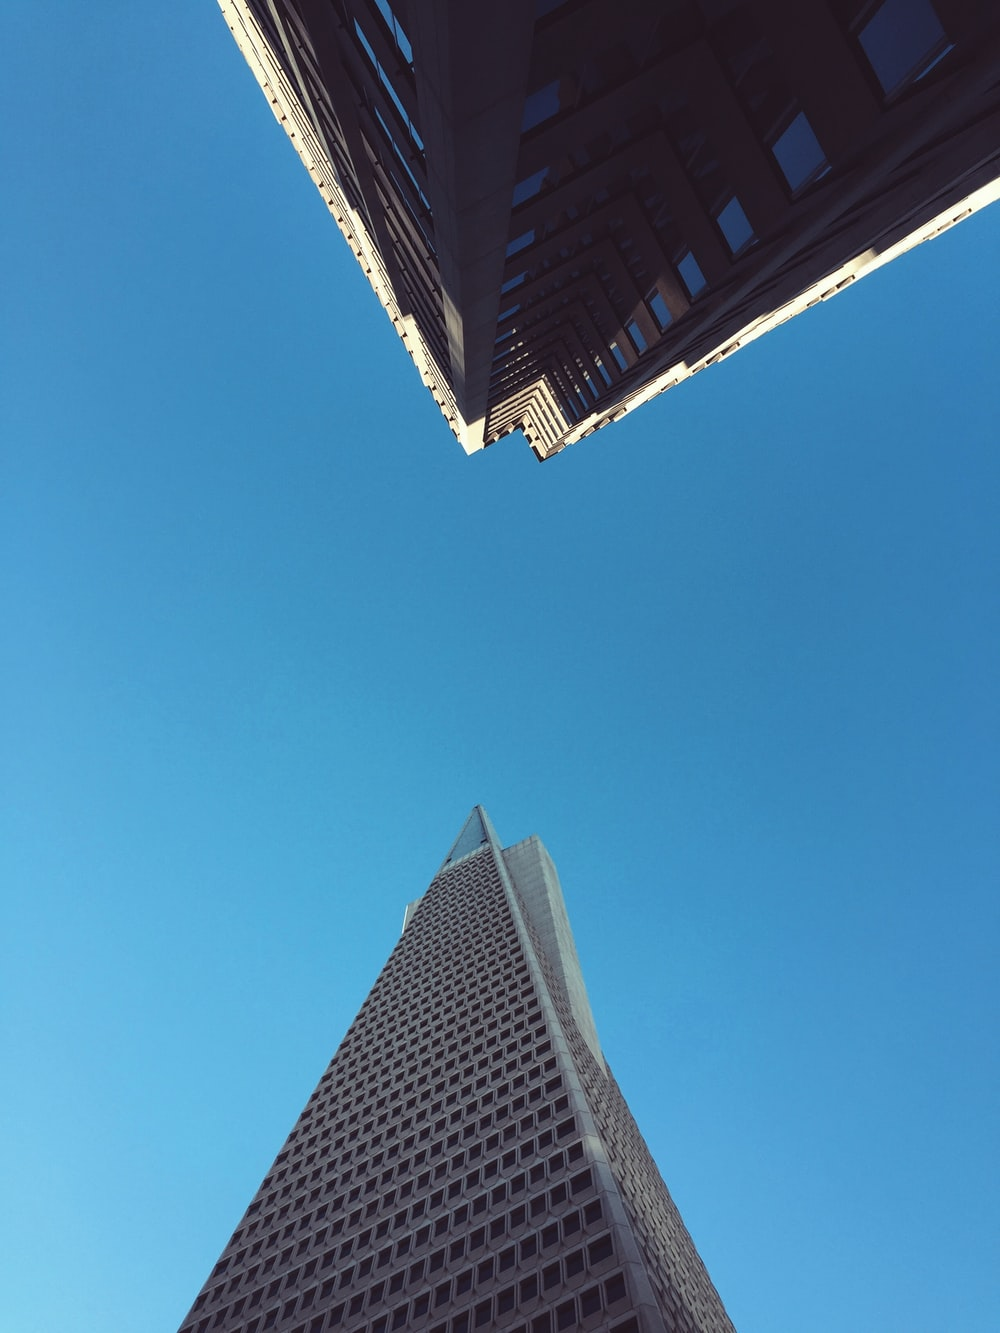 worm's-eye view photo of high-rise building